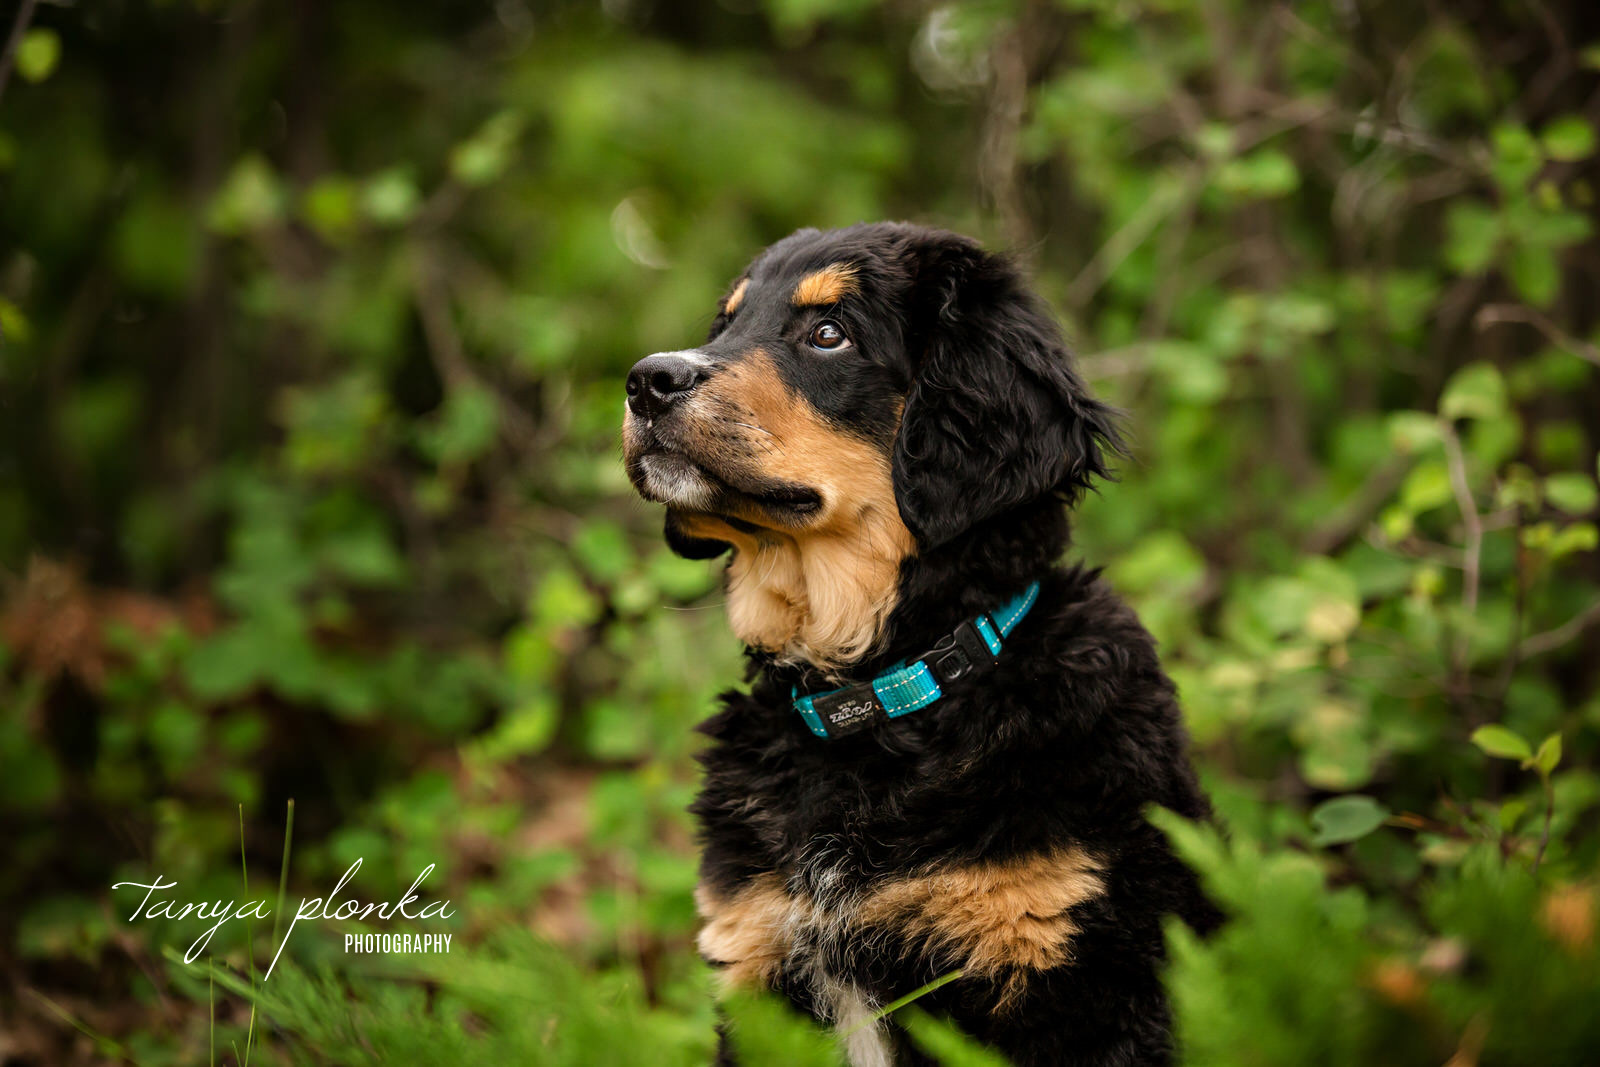 black and tan puppy looking to left while sitting in green leaves